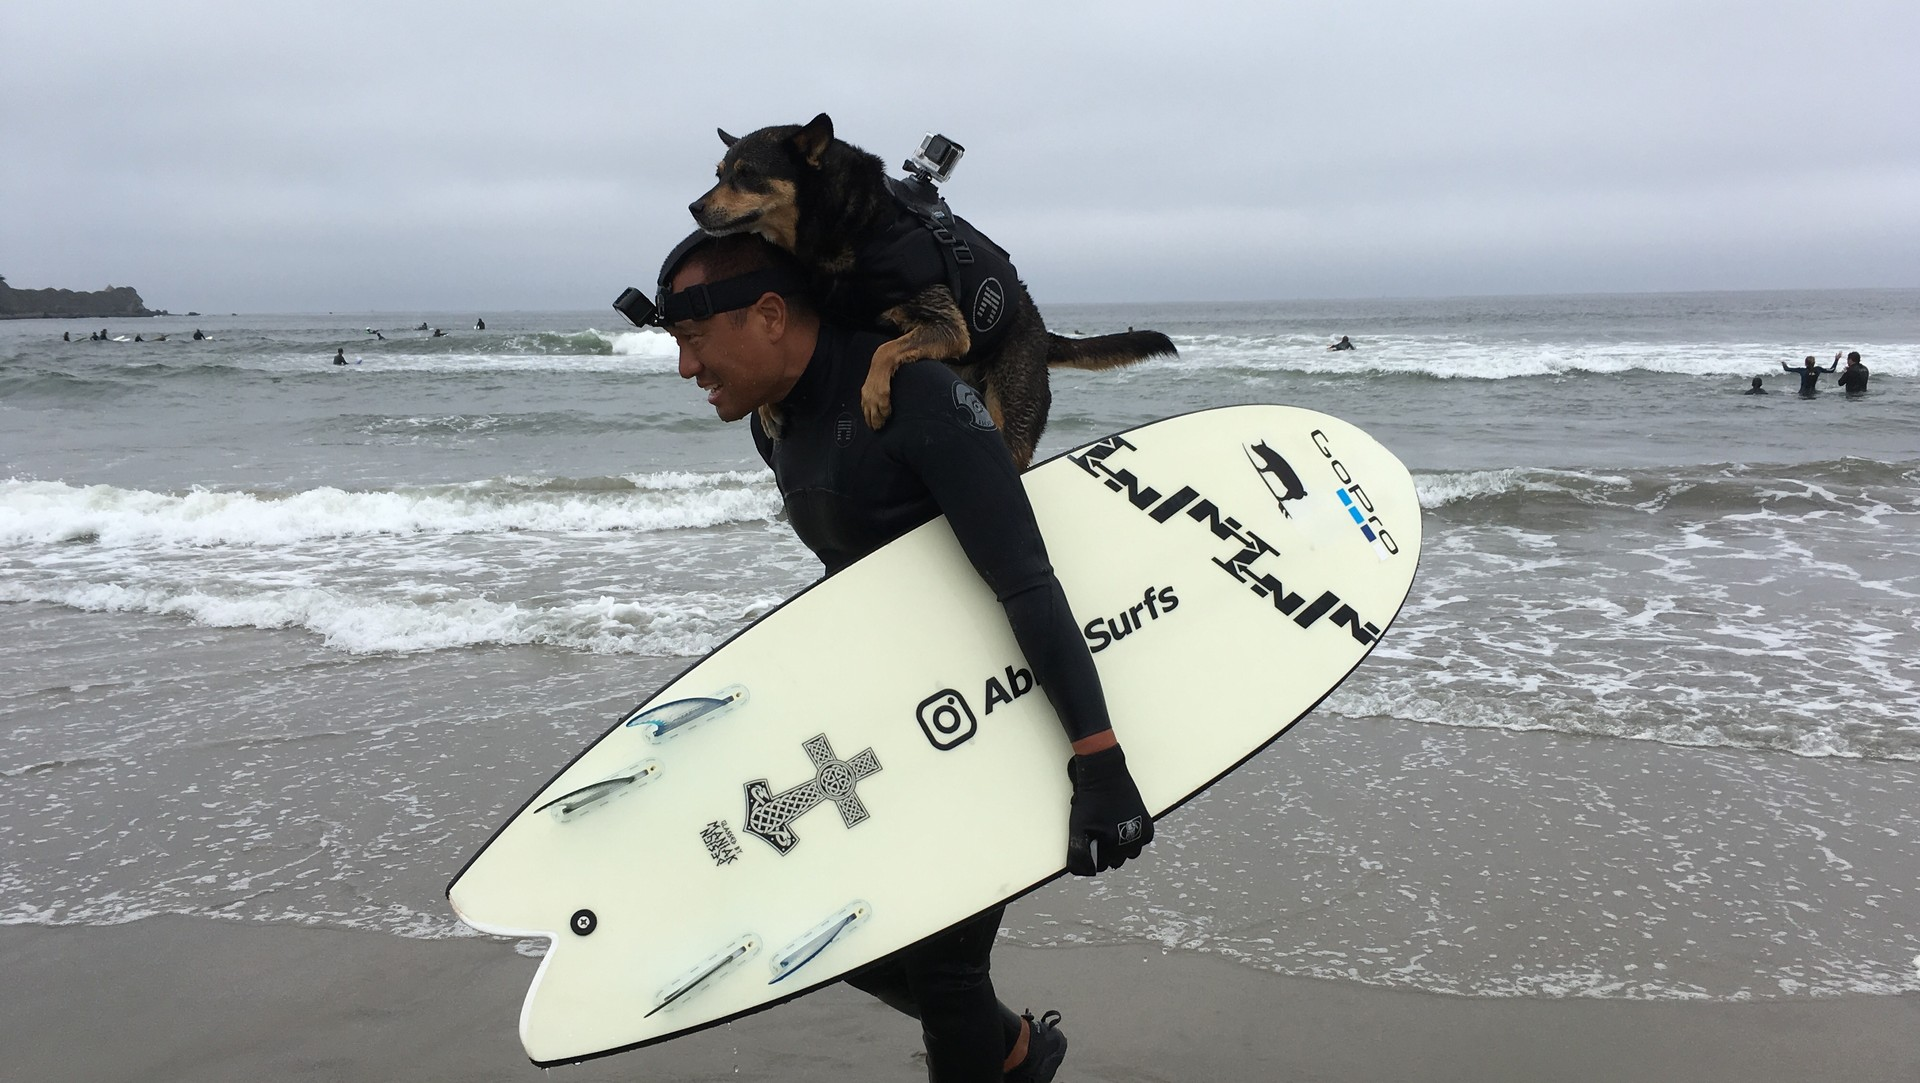 Abbie Girl rides triumphant on her human, Michael, at the first-ever Northern California dog surfing championships in Pacifica on September 10, 2016.